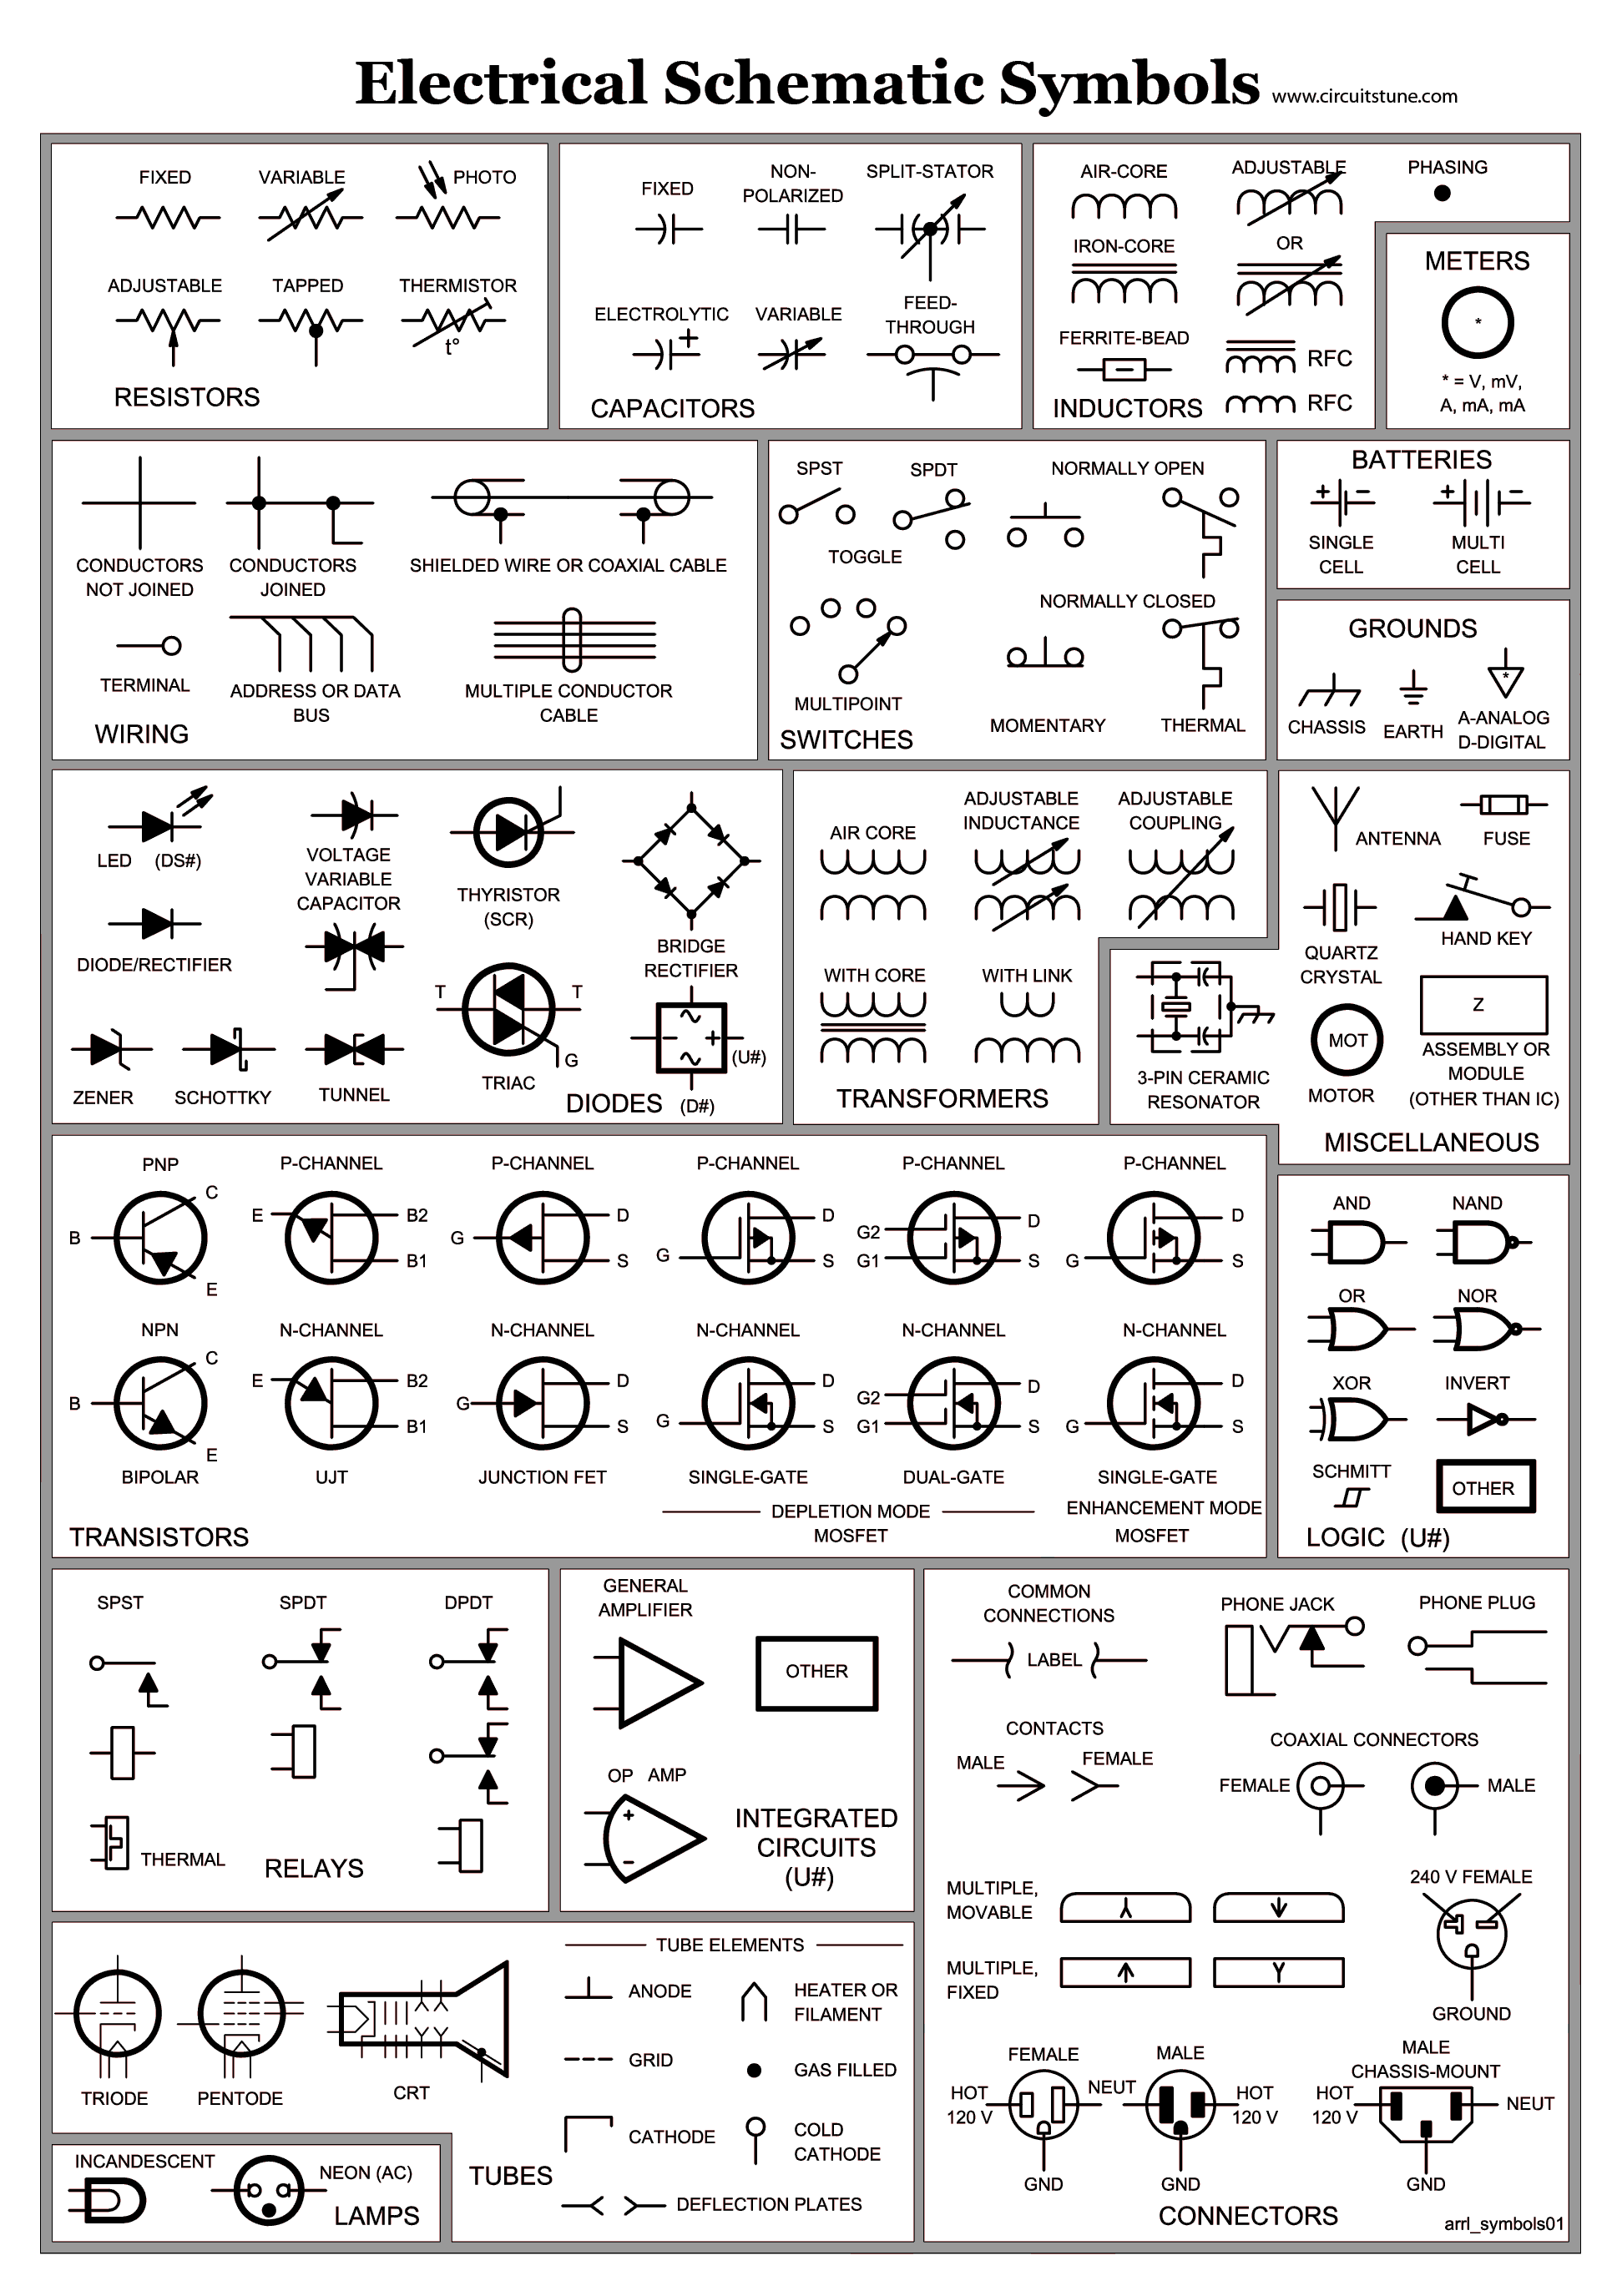 electrical schematic symbols wire diagram symbols automotive wiring rh pinterest co uk Electrical Circuit Diagrams Circuit Symbols and Definitions